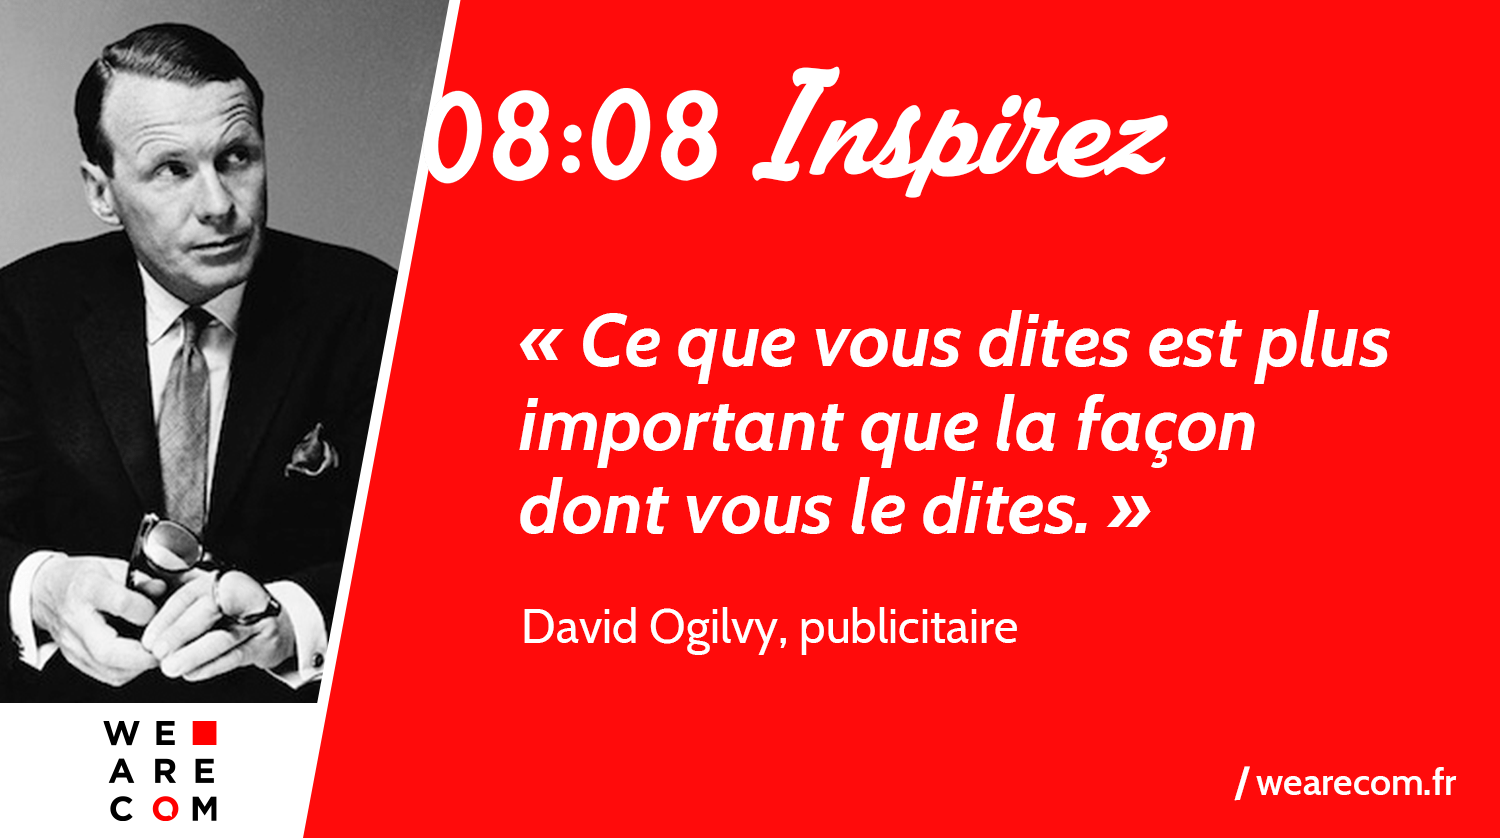 David_Ogilvy_communication_citation_WeAreCOM